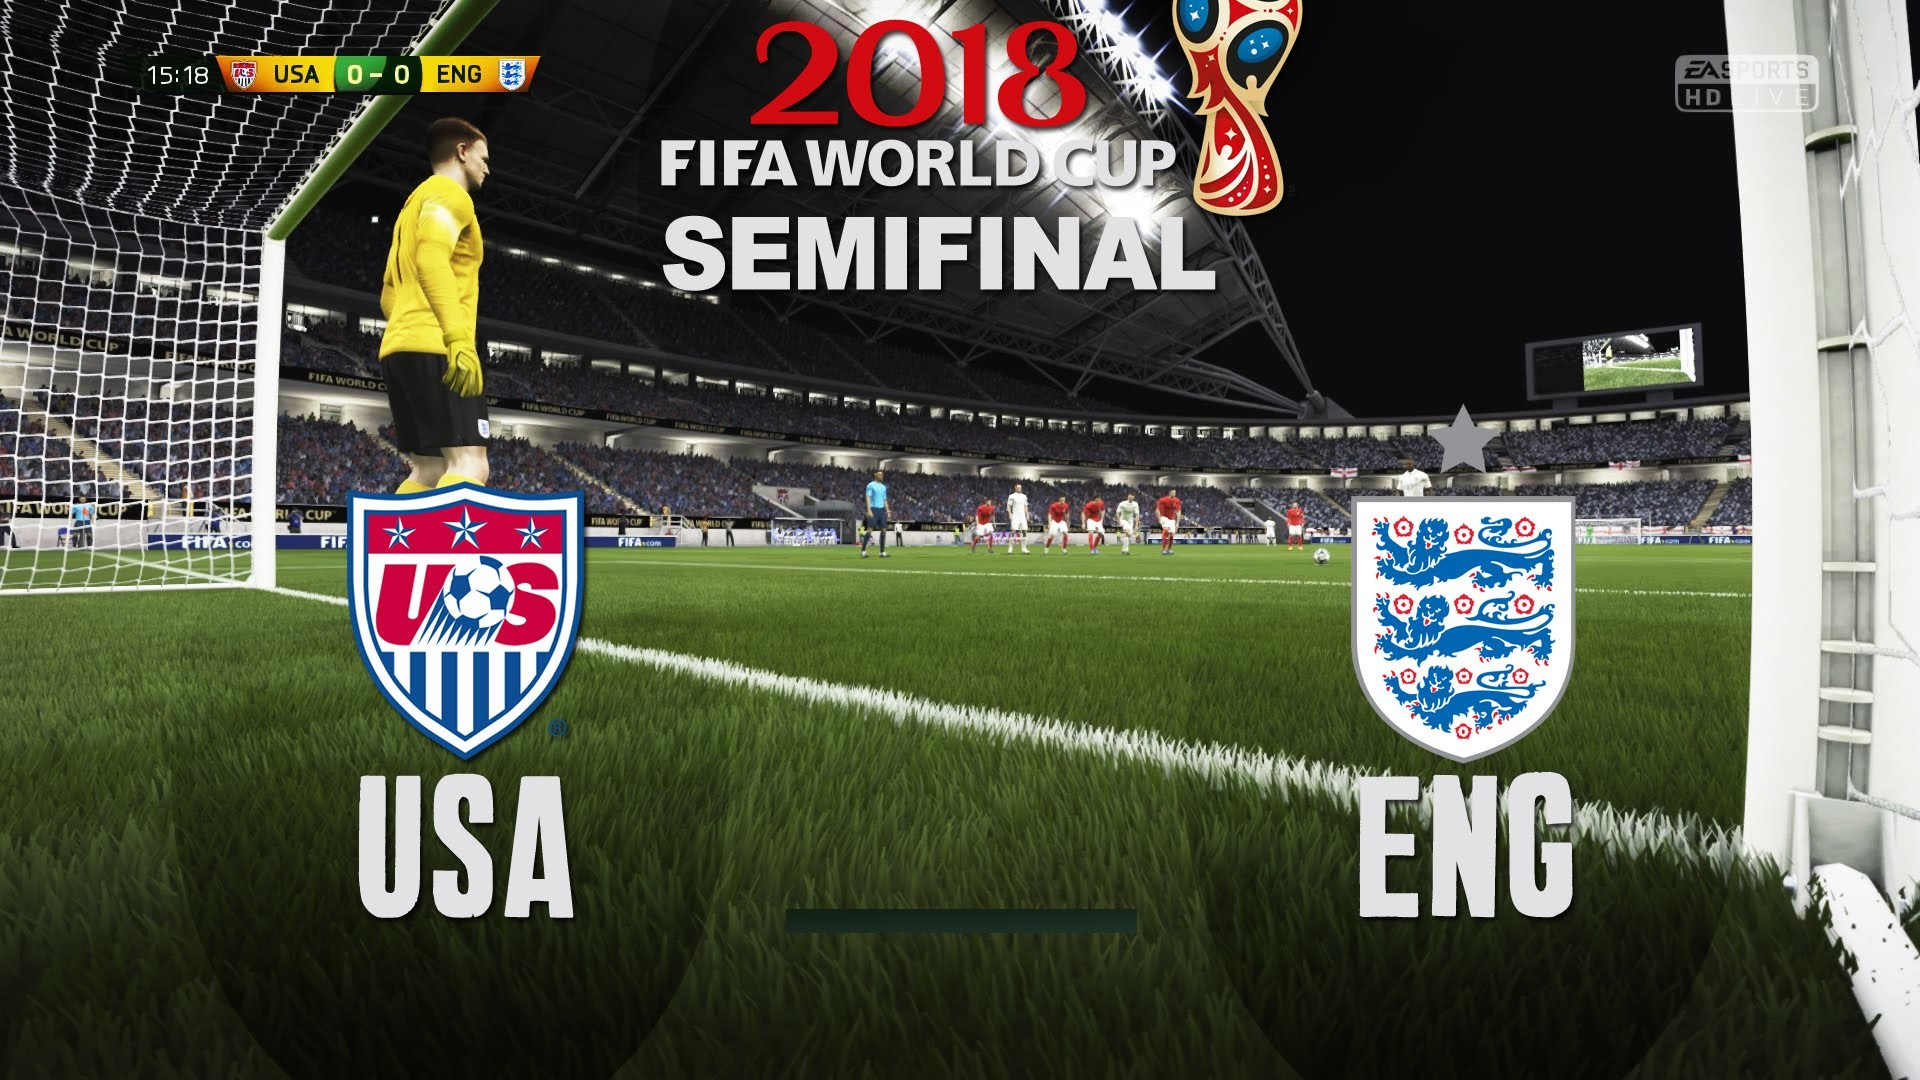 1920x1080 World Cup 2018 - USA vs England - Semifinal Match #6 - FIFA Gameplay